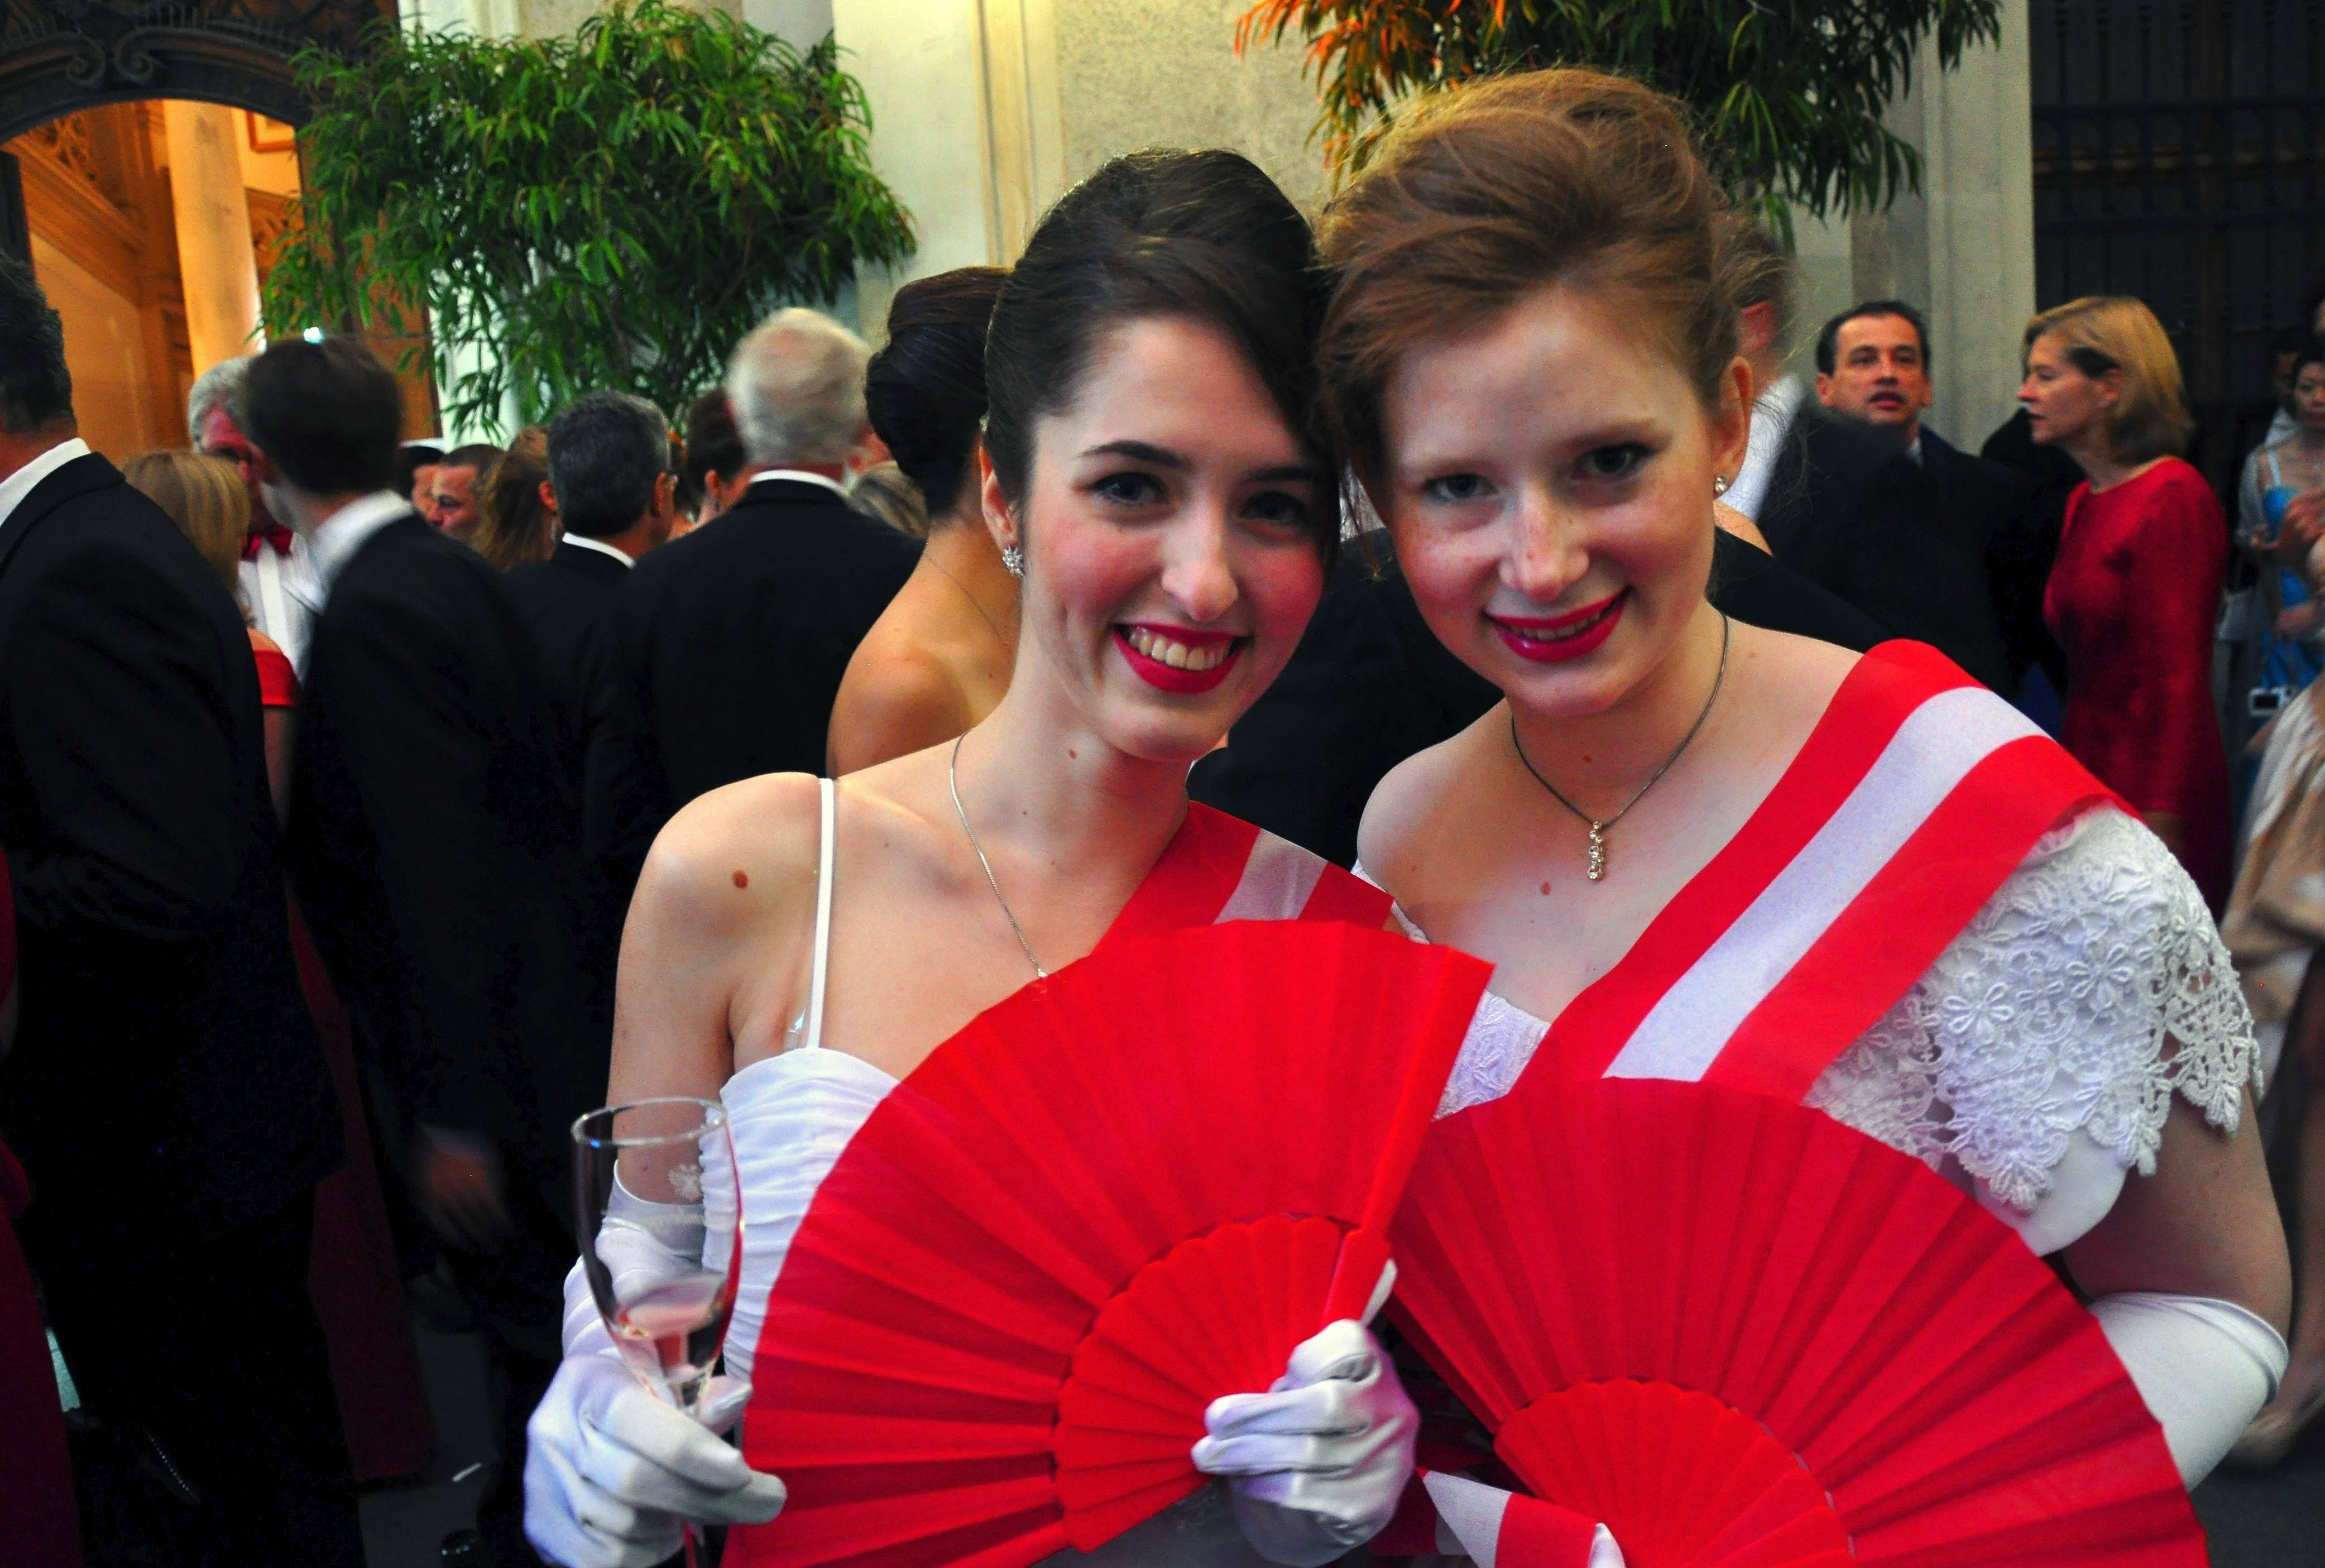 Debutantes are in high spirits during a cocktail reception prior to the opening of the Fete Imperiale ball in Vienna, Austria.